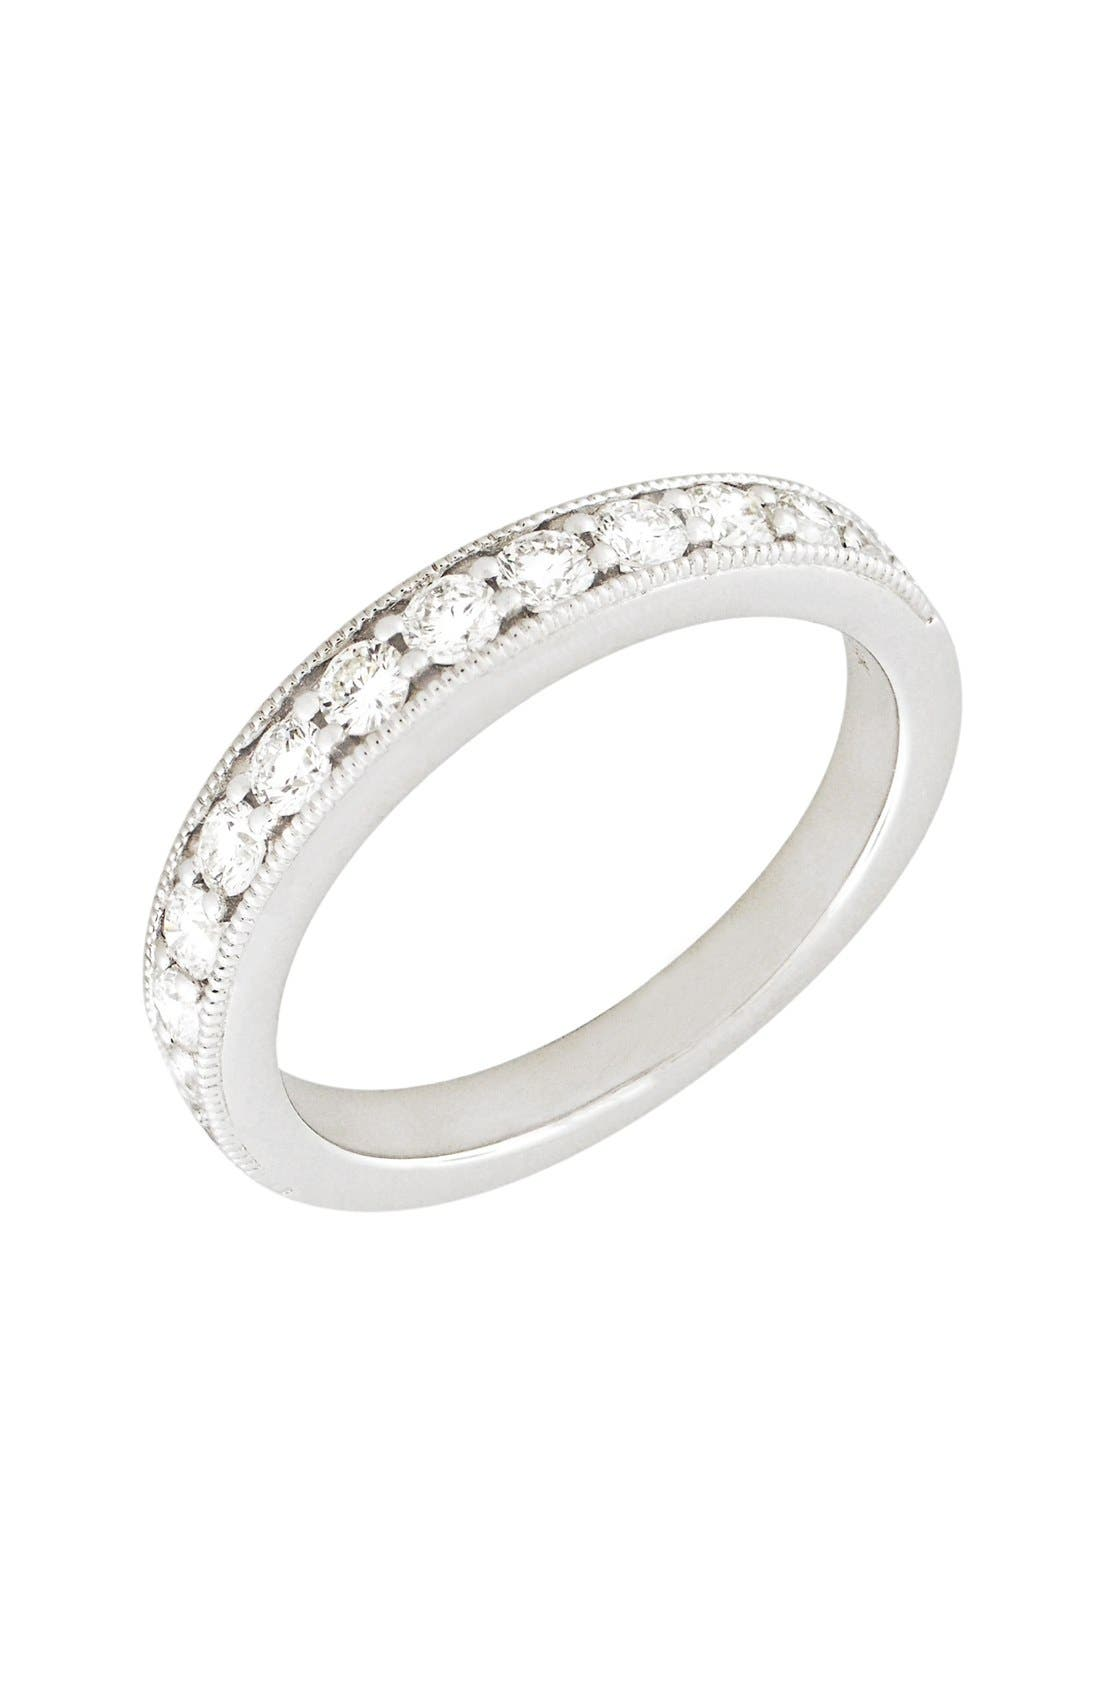 Alternate Image 1 Selected - Bony Levy Stackable Diamond Band Ring (Nordstrom Exclusive)